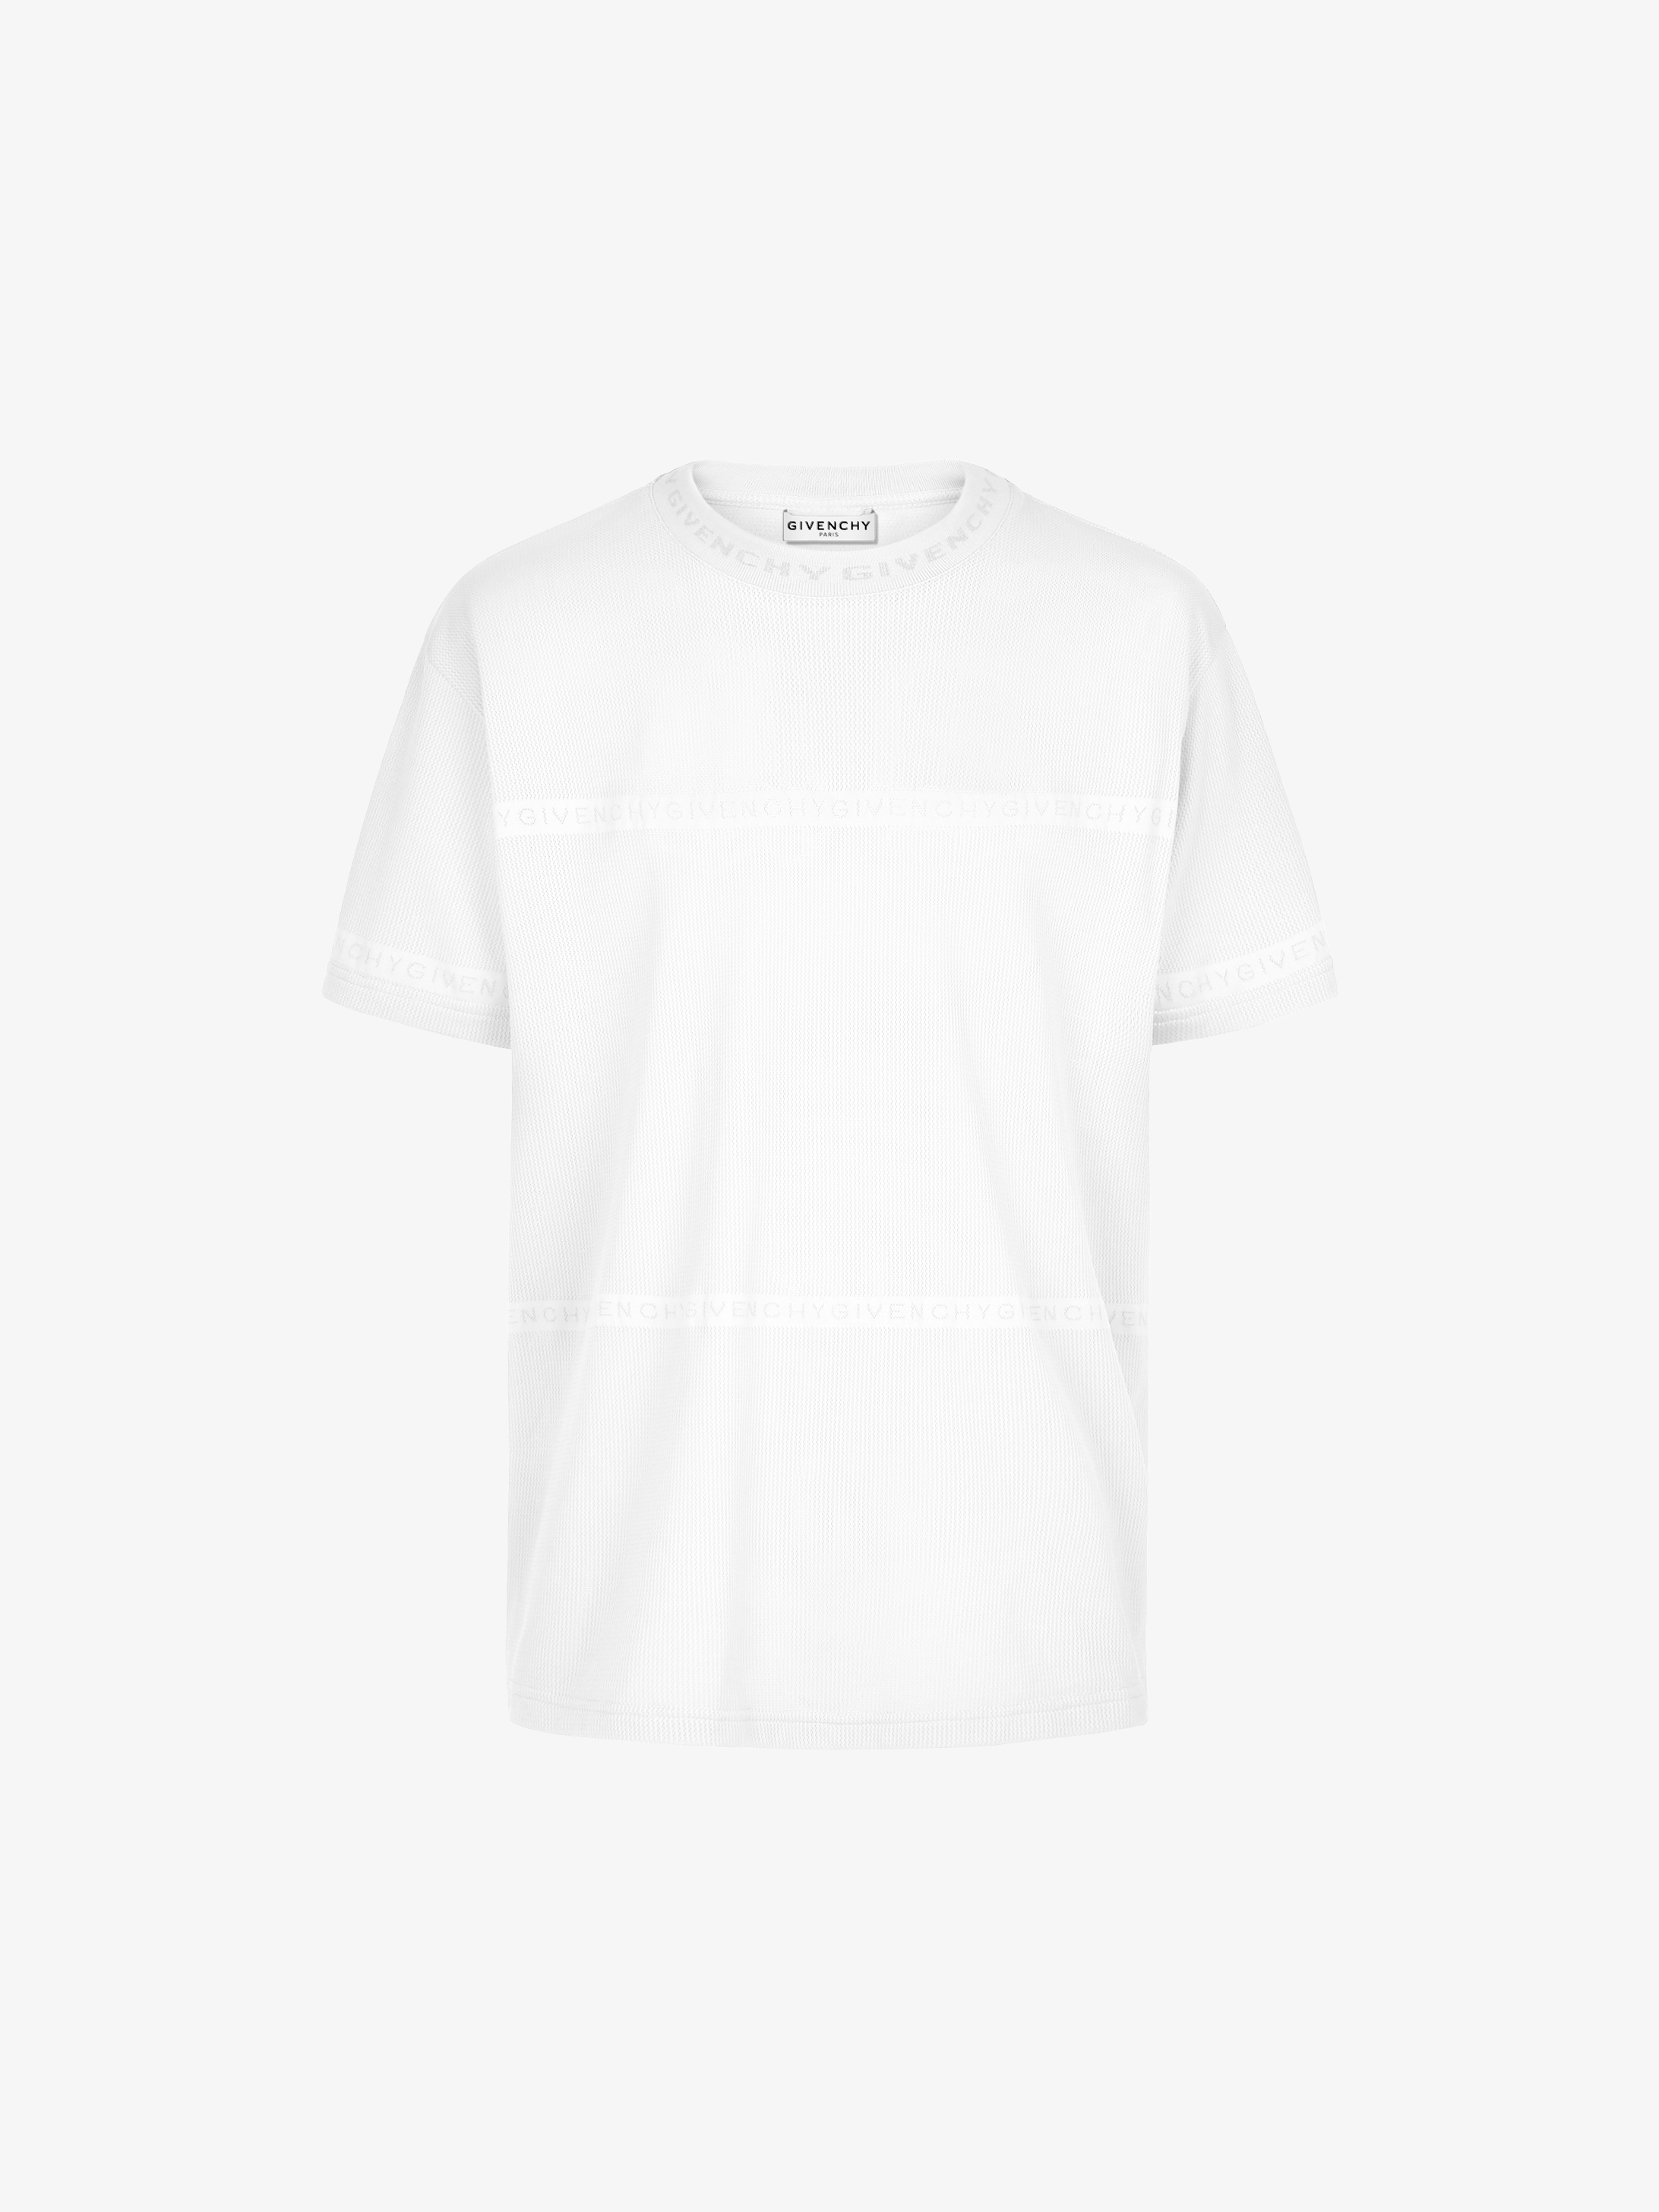 GIVENCHY ADDRESS band t-shirt